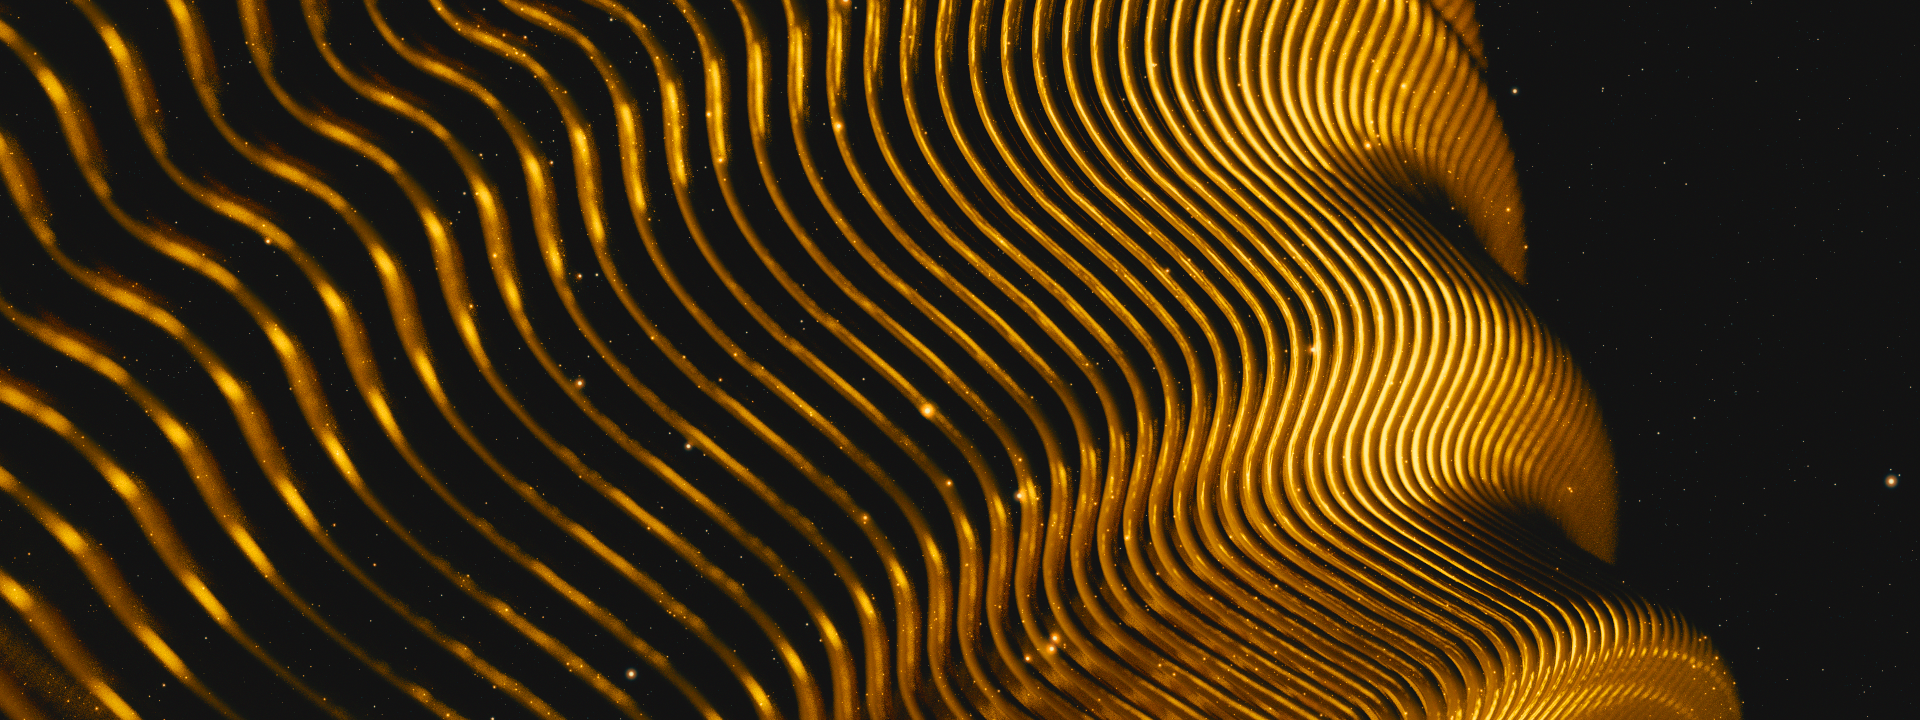 Waves_Of_Gold_02_00000.png